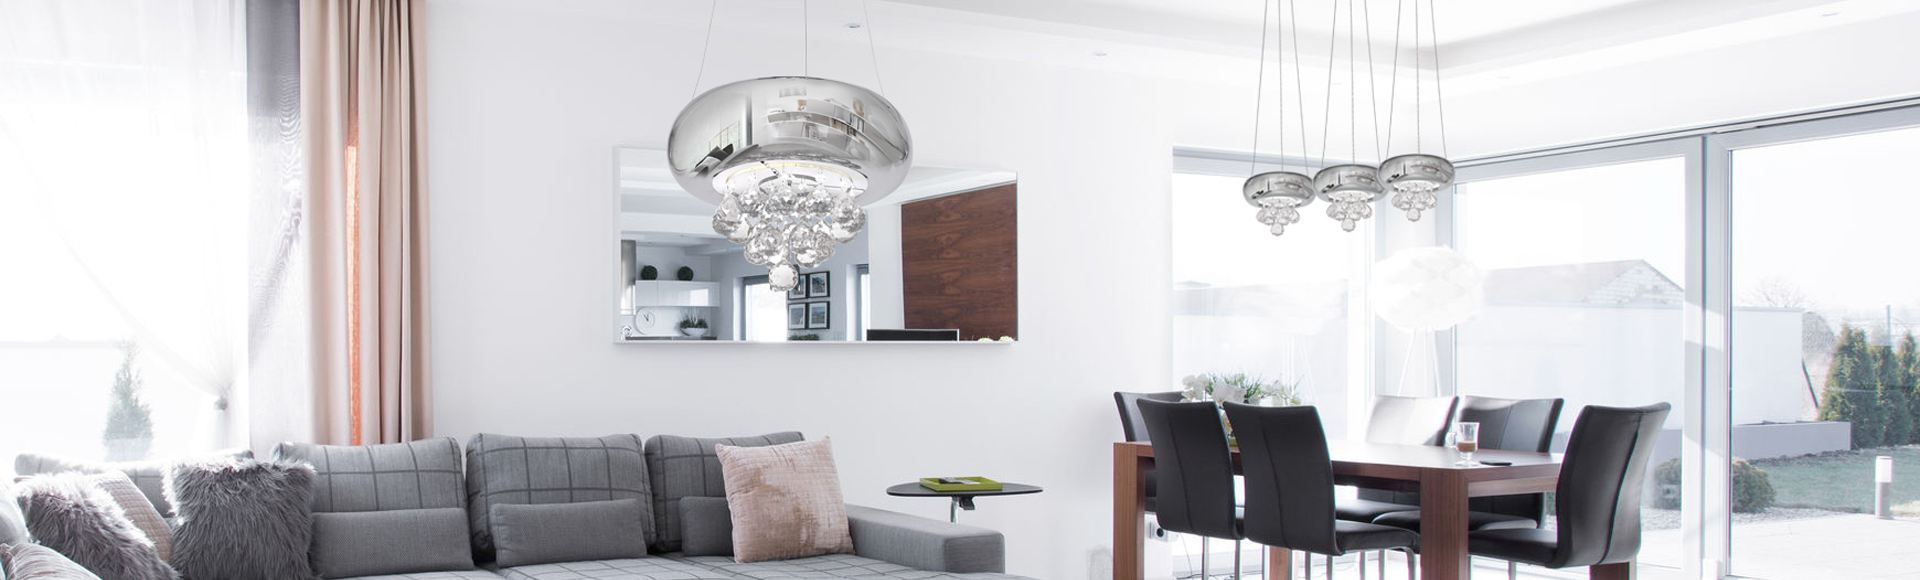 Contemporary lights in living room